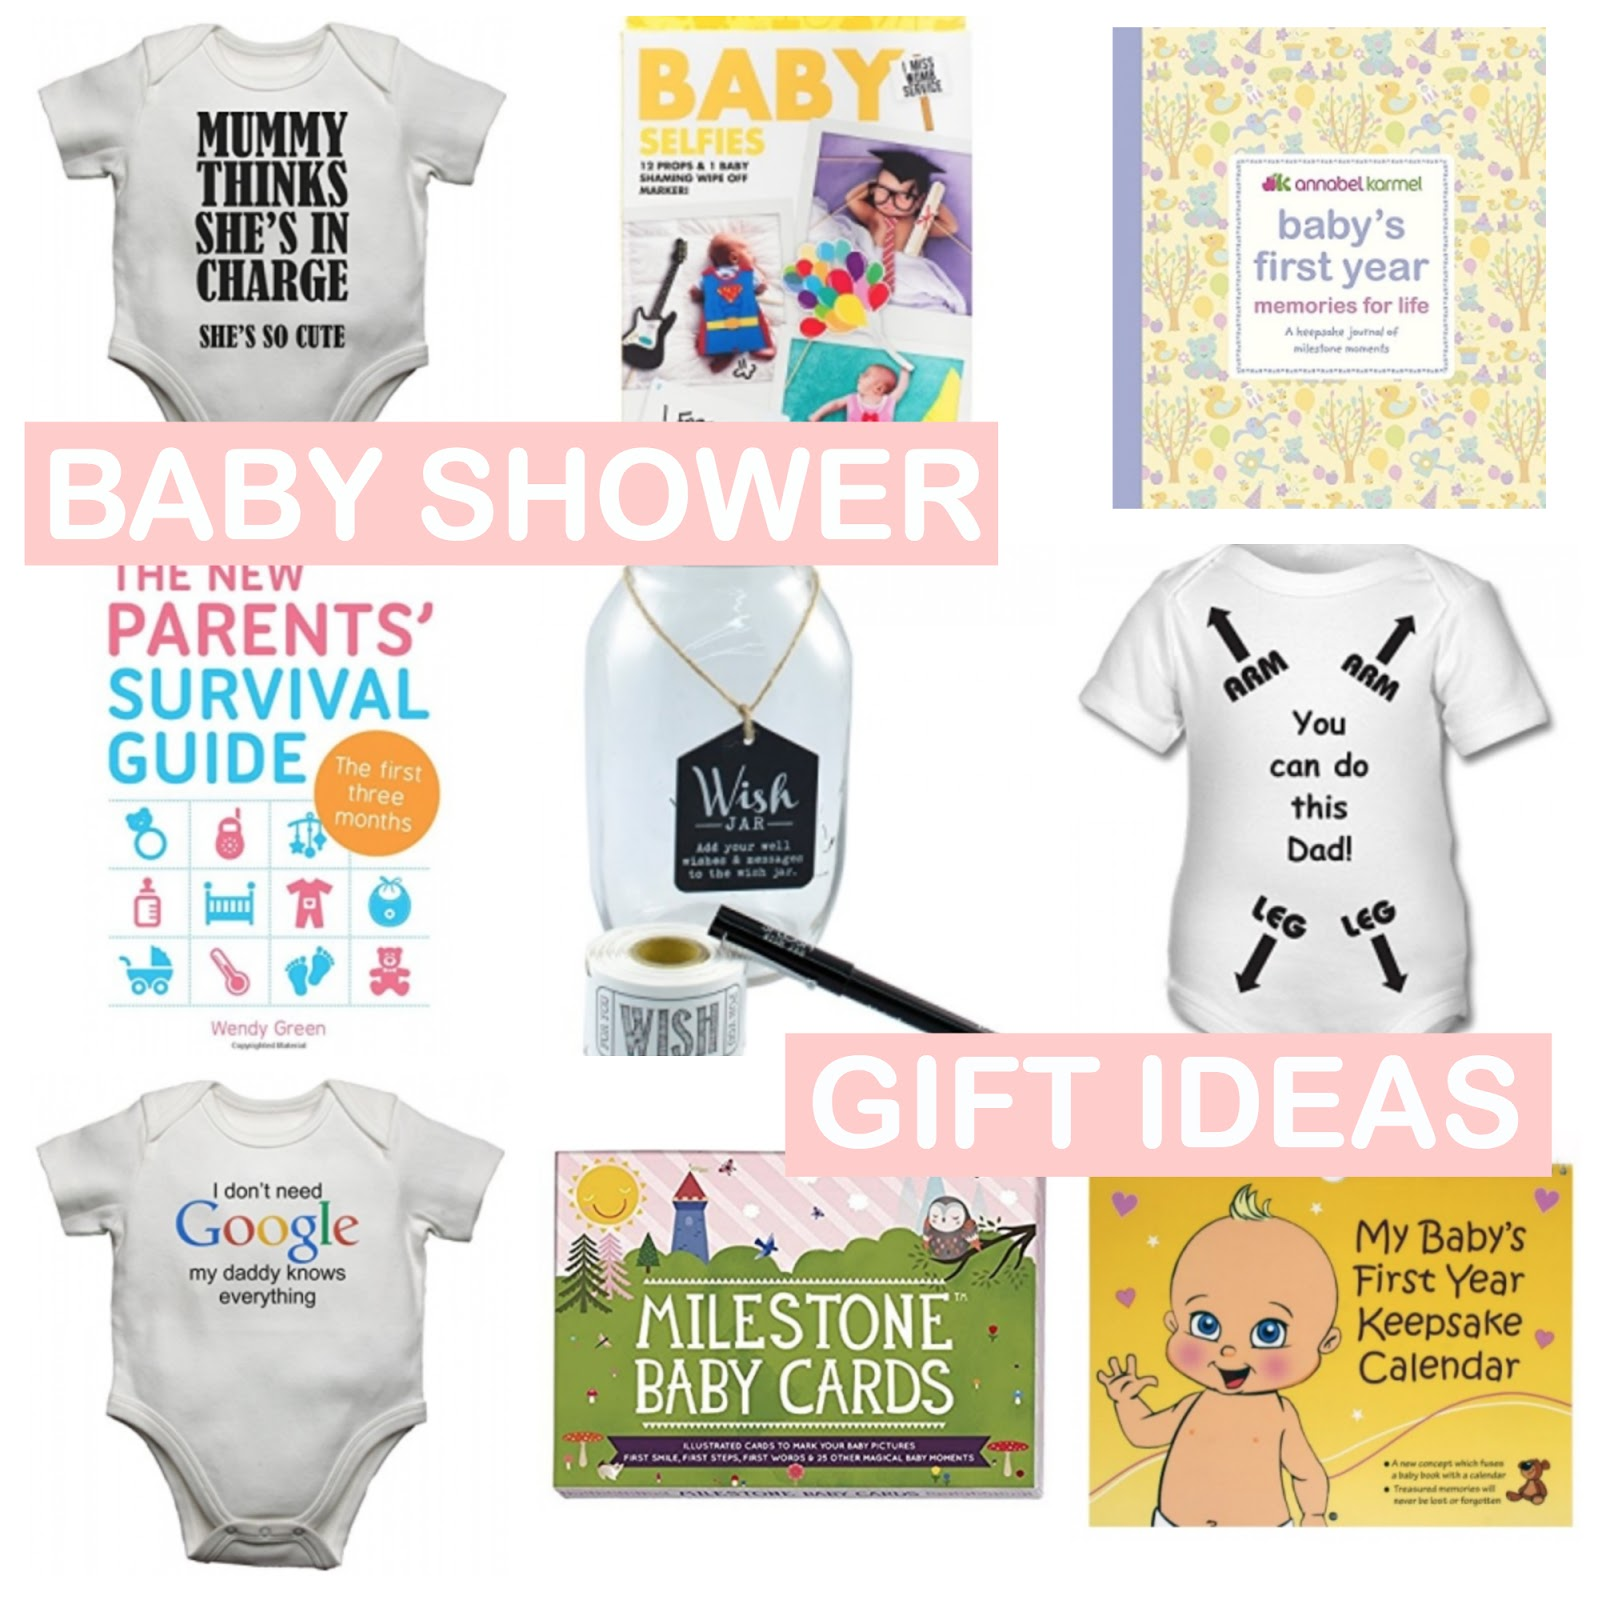 Baby Gift Ideas Uk : Baby shower gift ideas uk family travel lifestyle